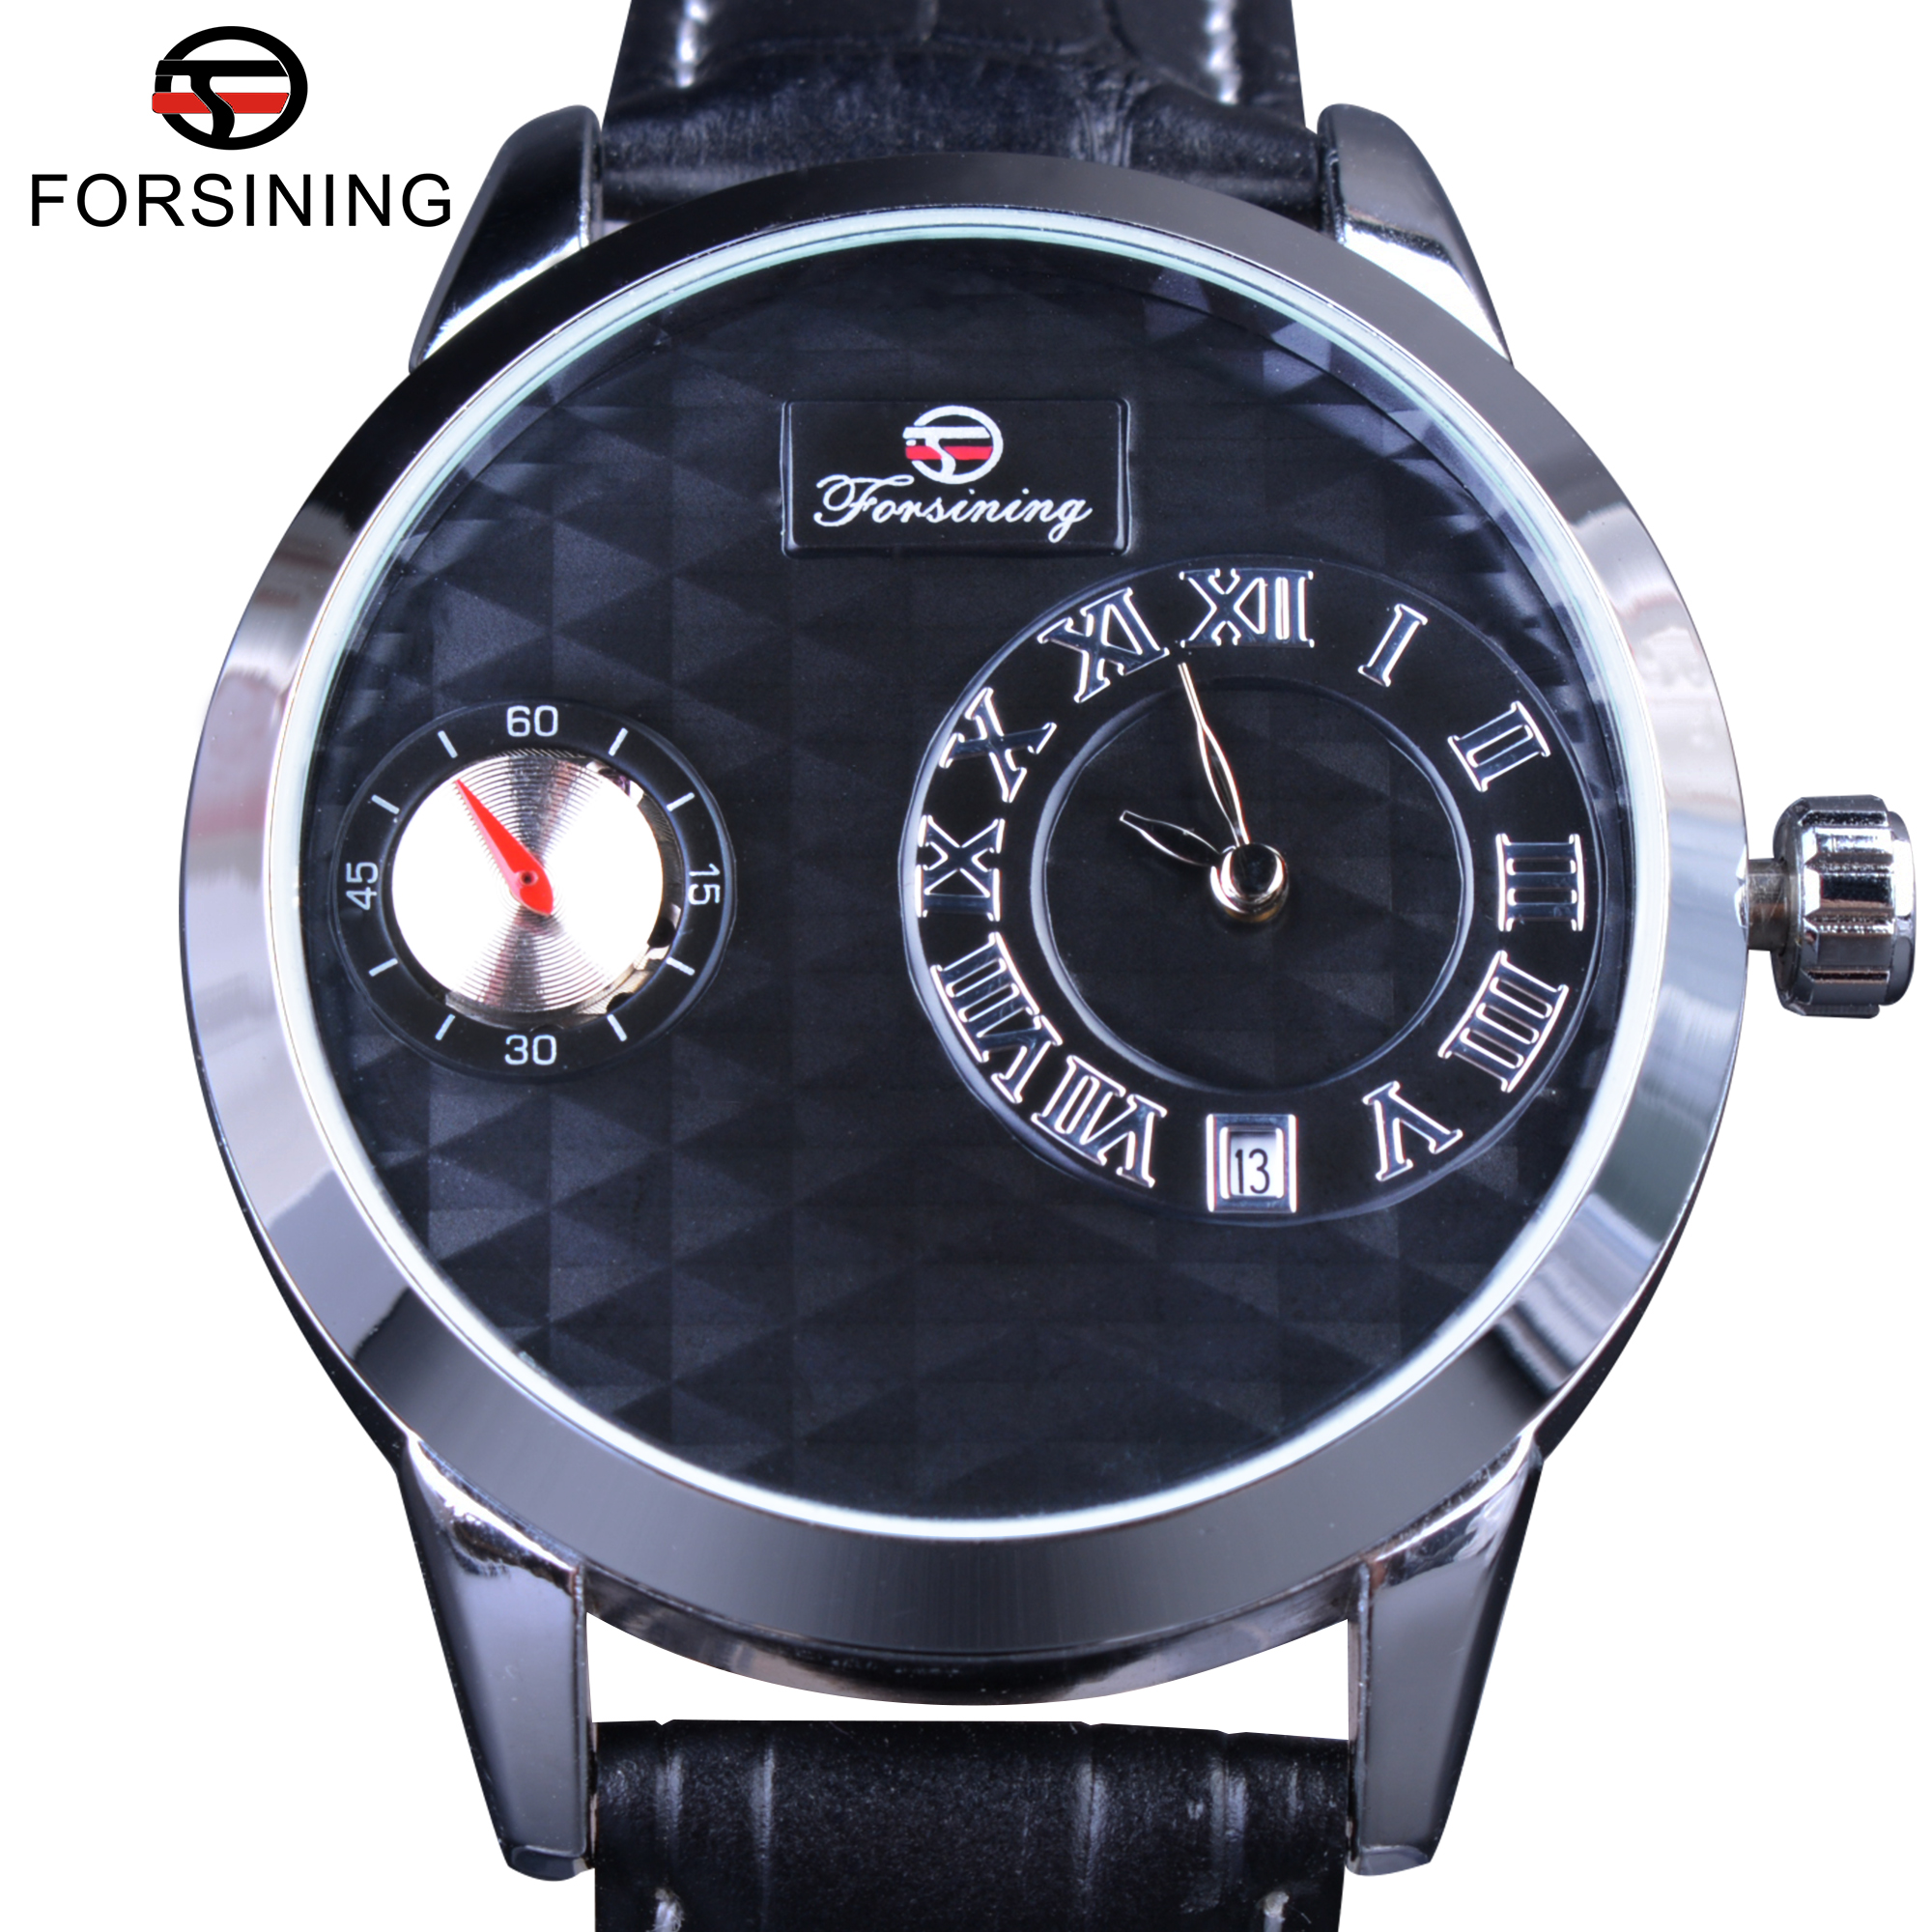 Forsining Small Dial Second Hand Display Obscure Desig Mens Watches Top Brand Luxury Automatic Watch Fashion Casual Clock Men forsining date month display rose golden case mens watches top brand luxury automatic watch clock men casual fashion clock watch